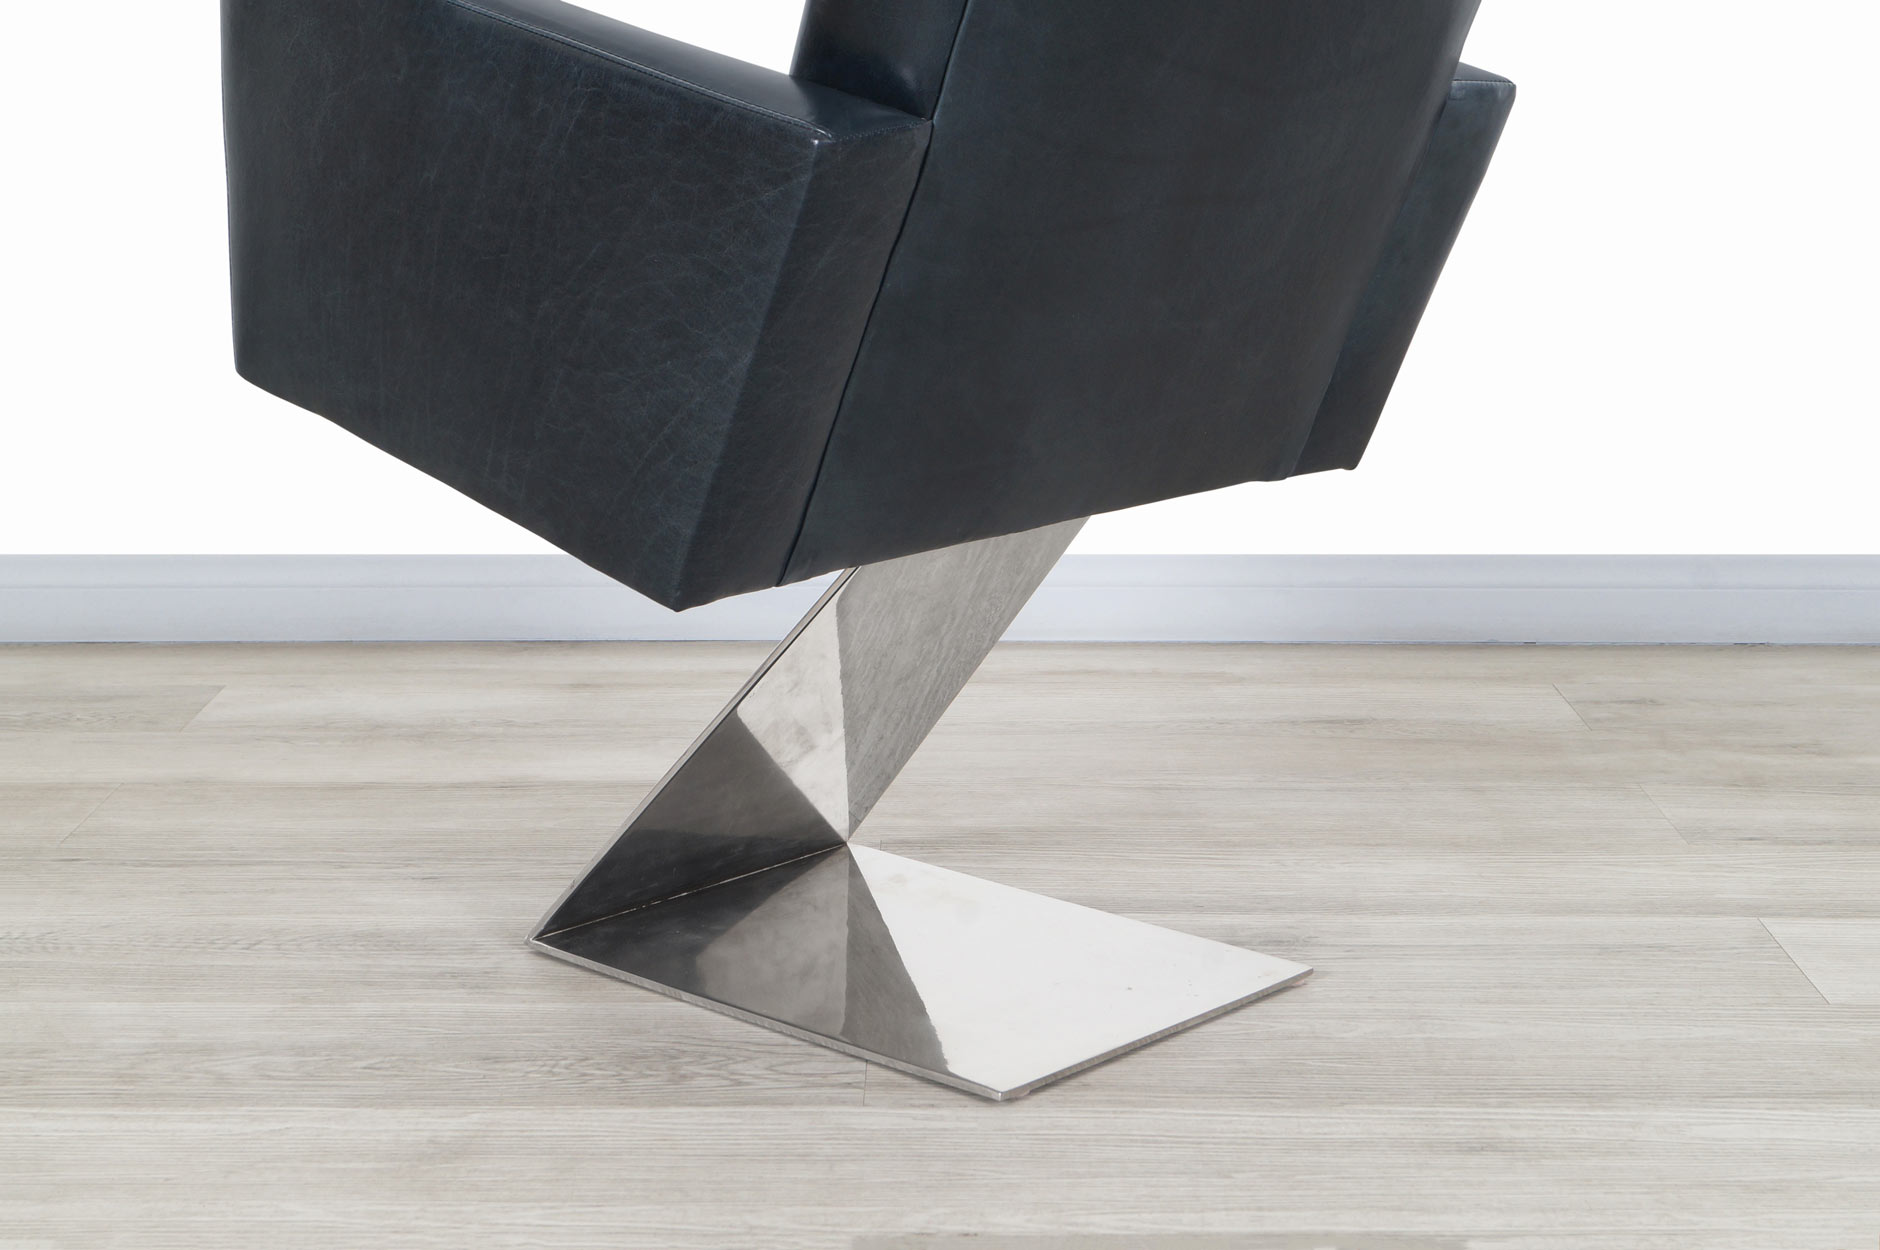 Vintage Stainless Steel Z Lounge Chairs by Milo Baughman, 2 Pairs Available